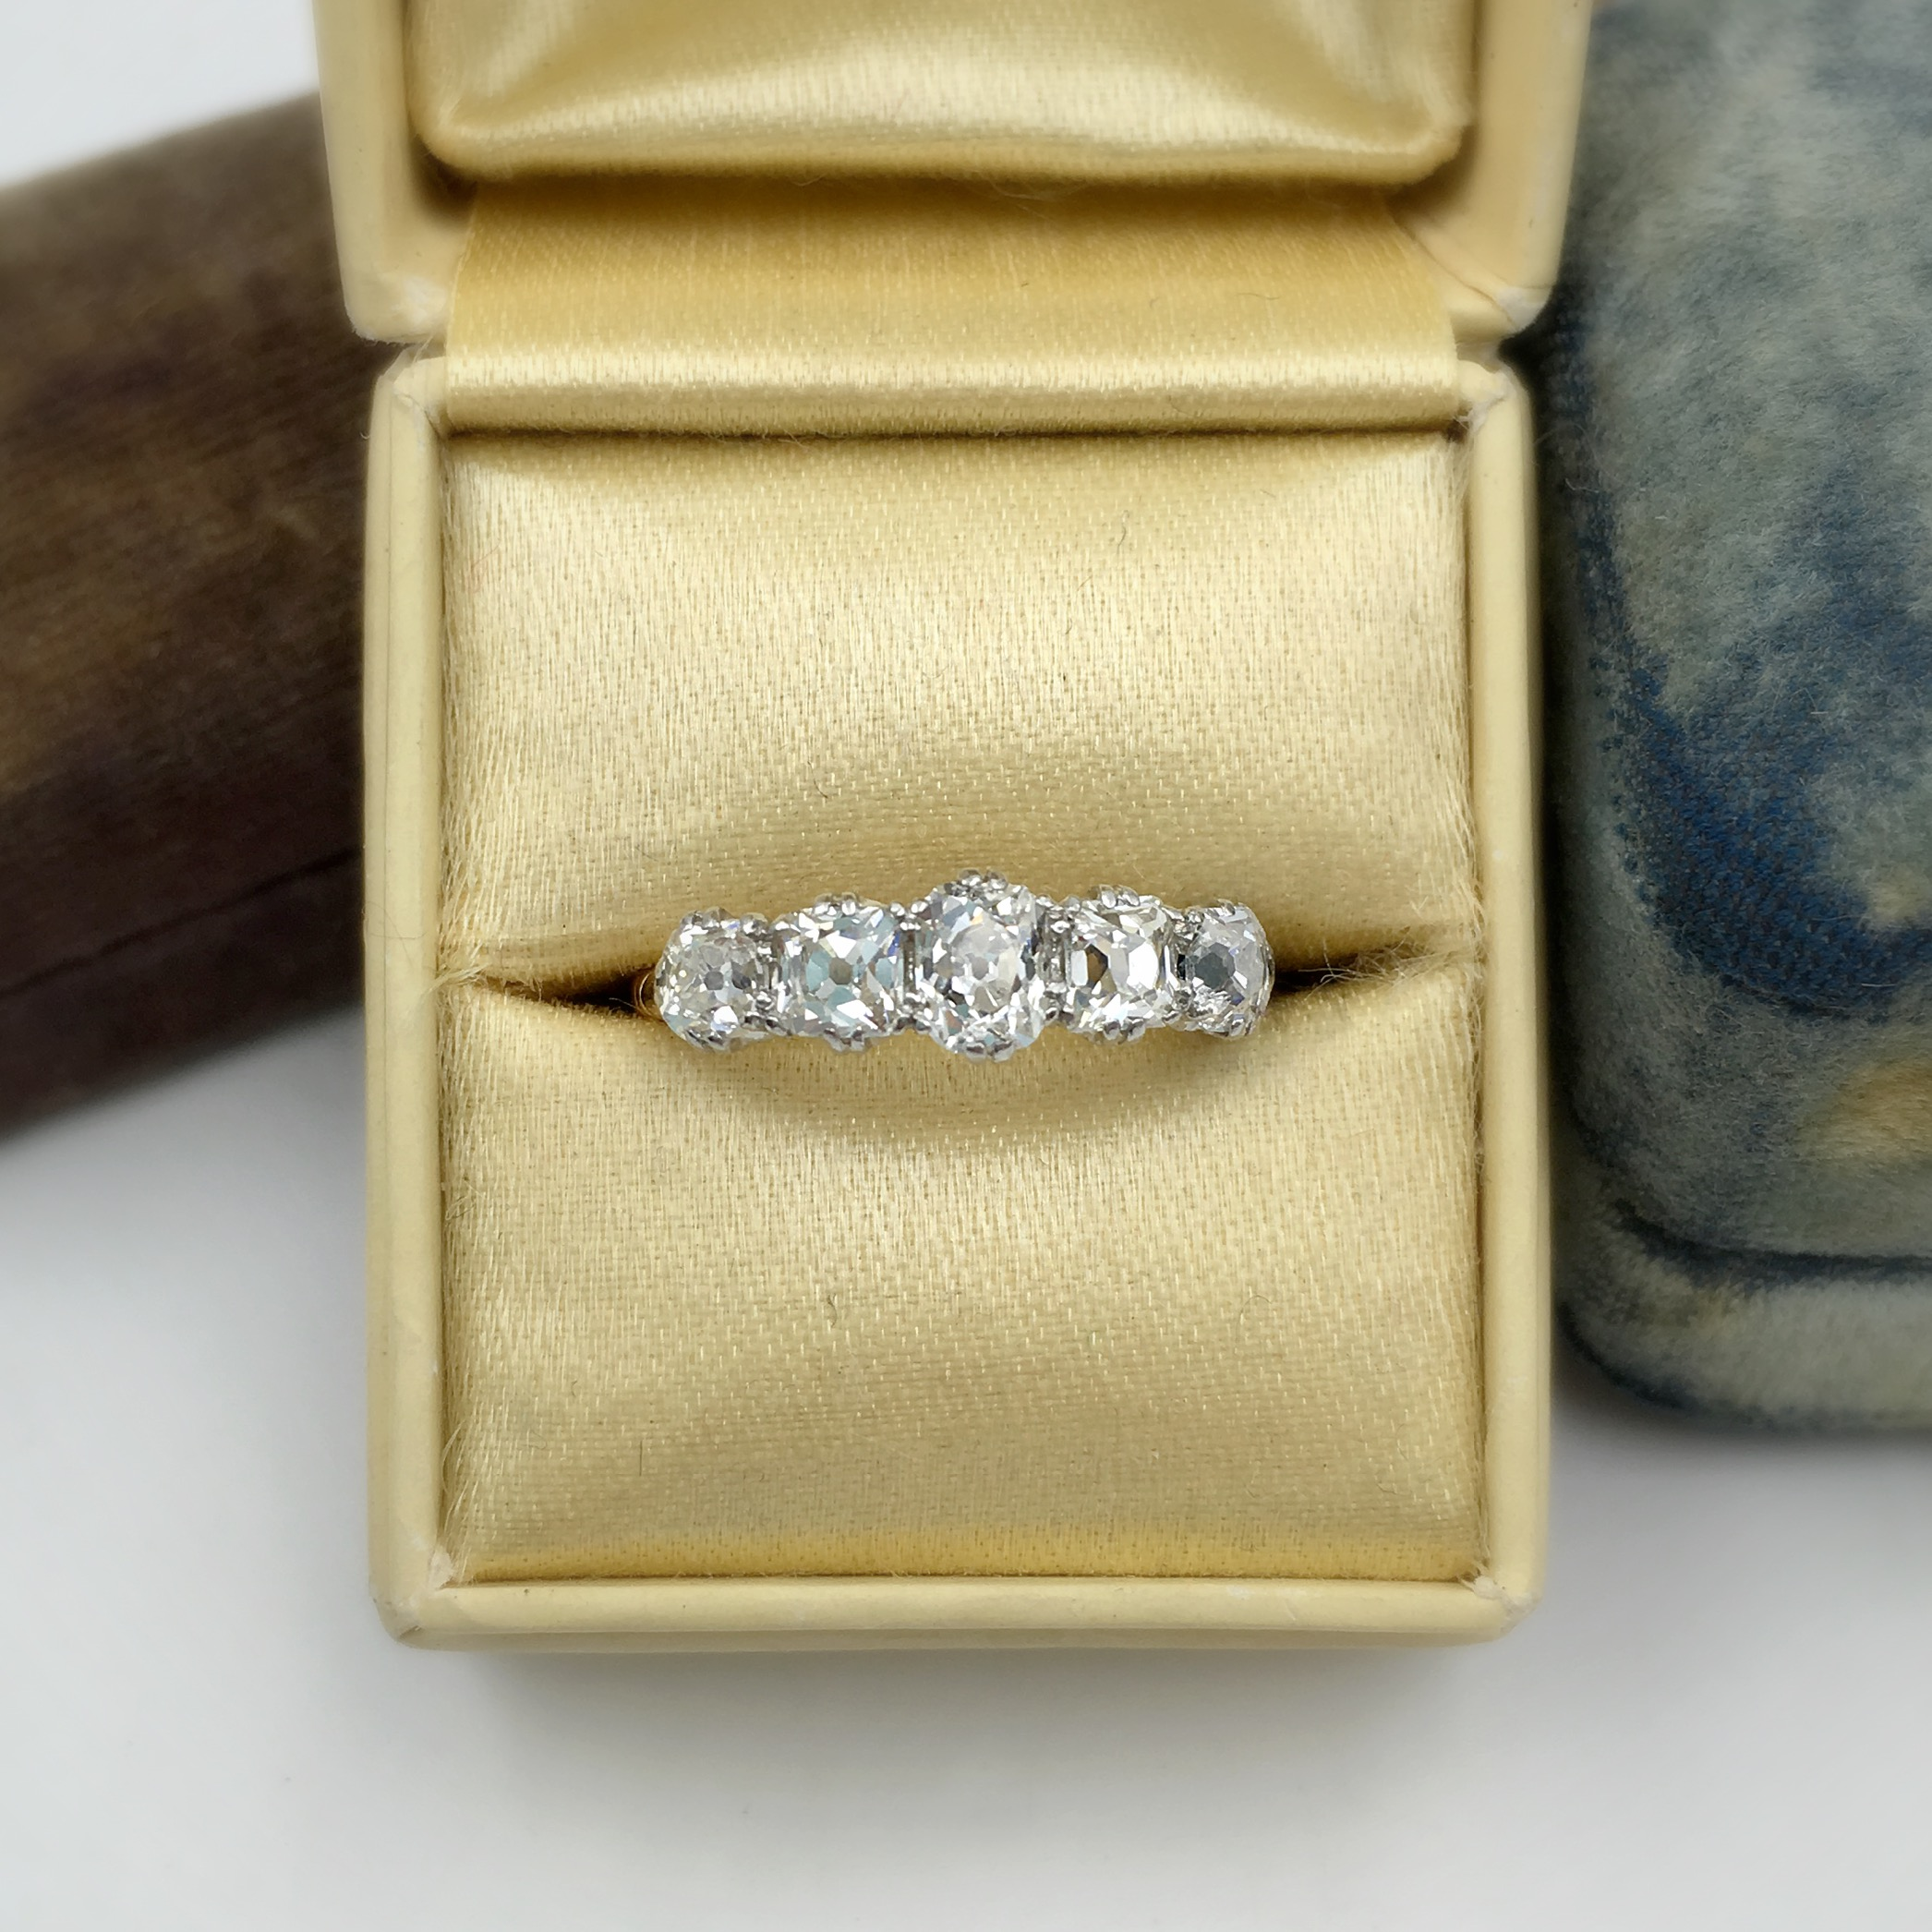 Edwardian Antique Diamond ring, Reverie Estate jewelry NYC